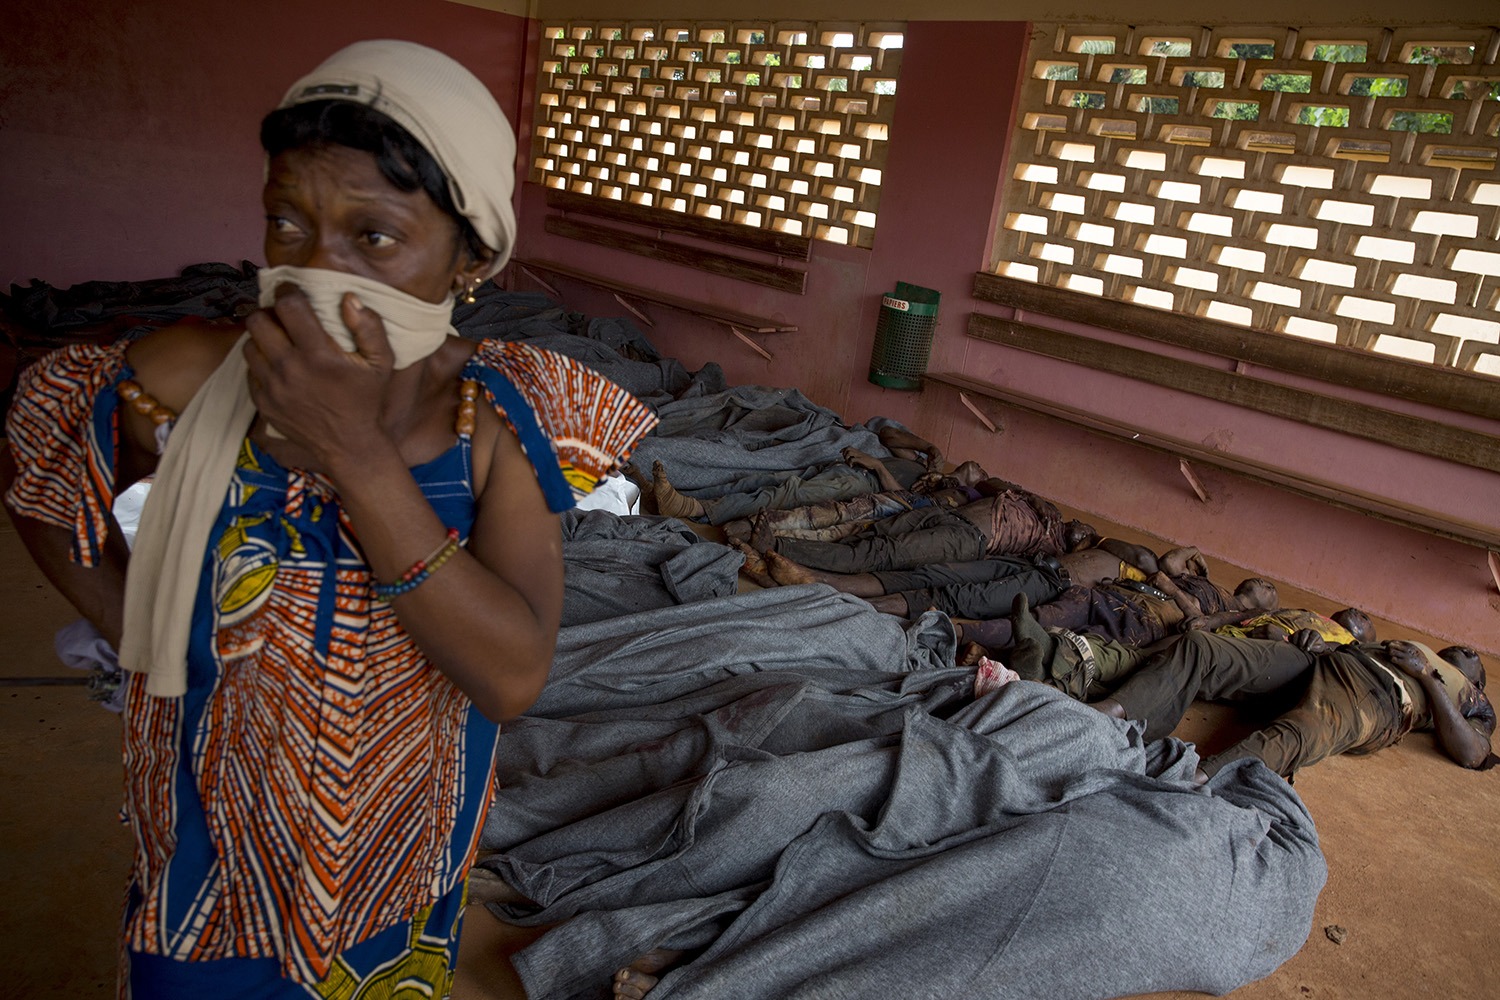 Dec. 6, 2013. Bodies in the morgue of the Hôpital Communautaire in Bangui.